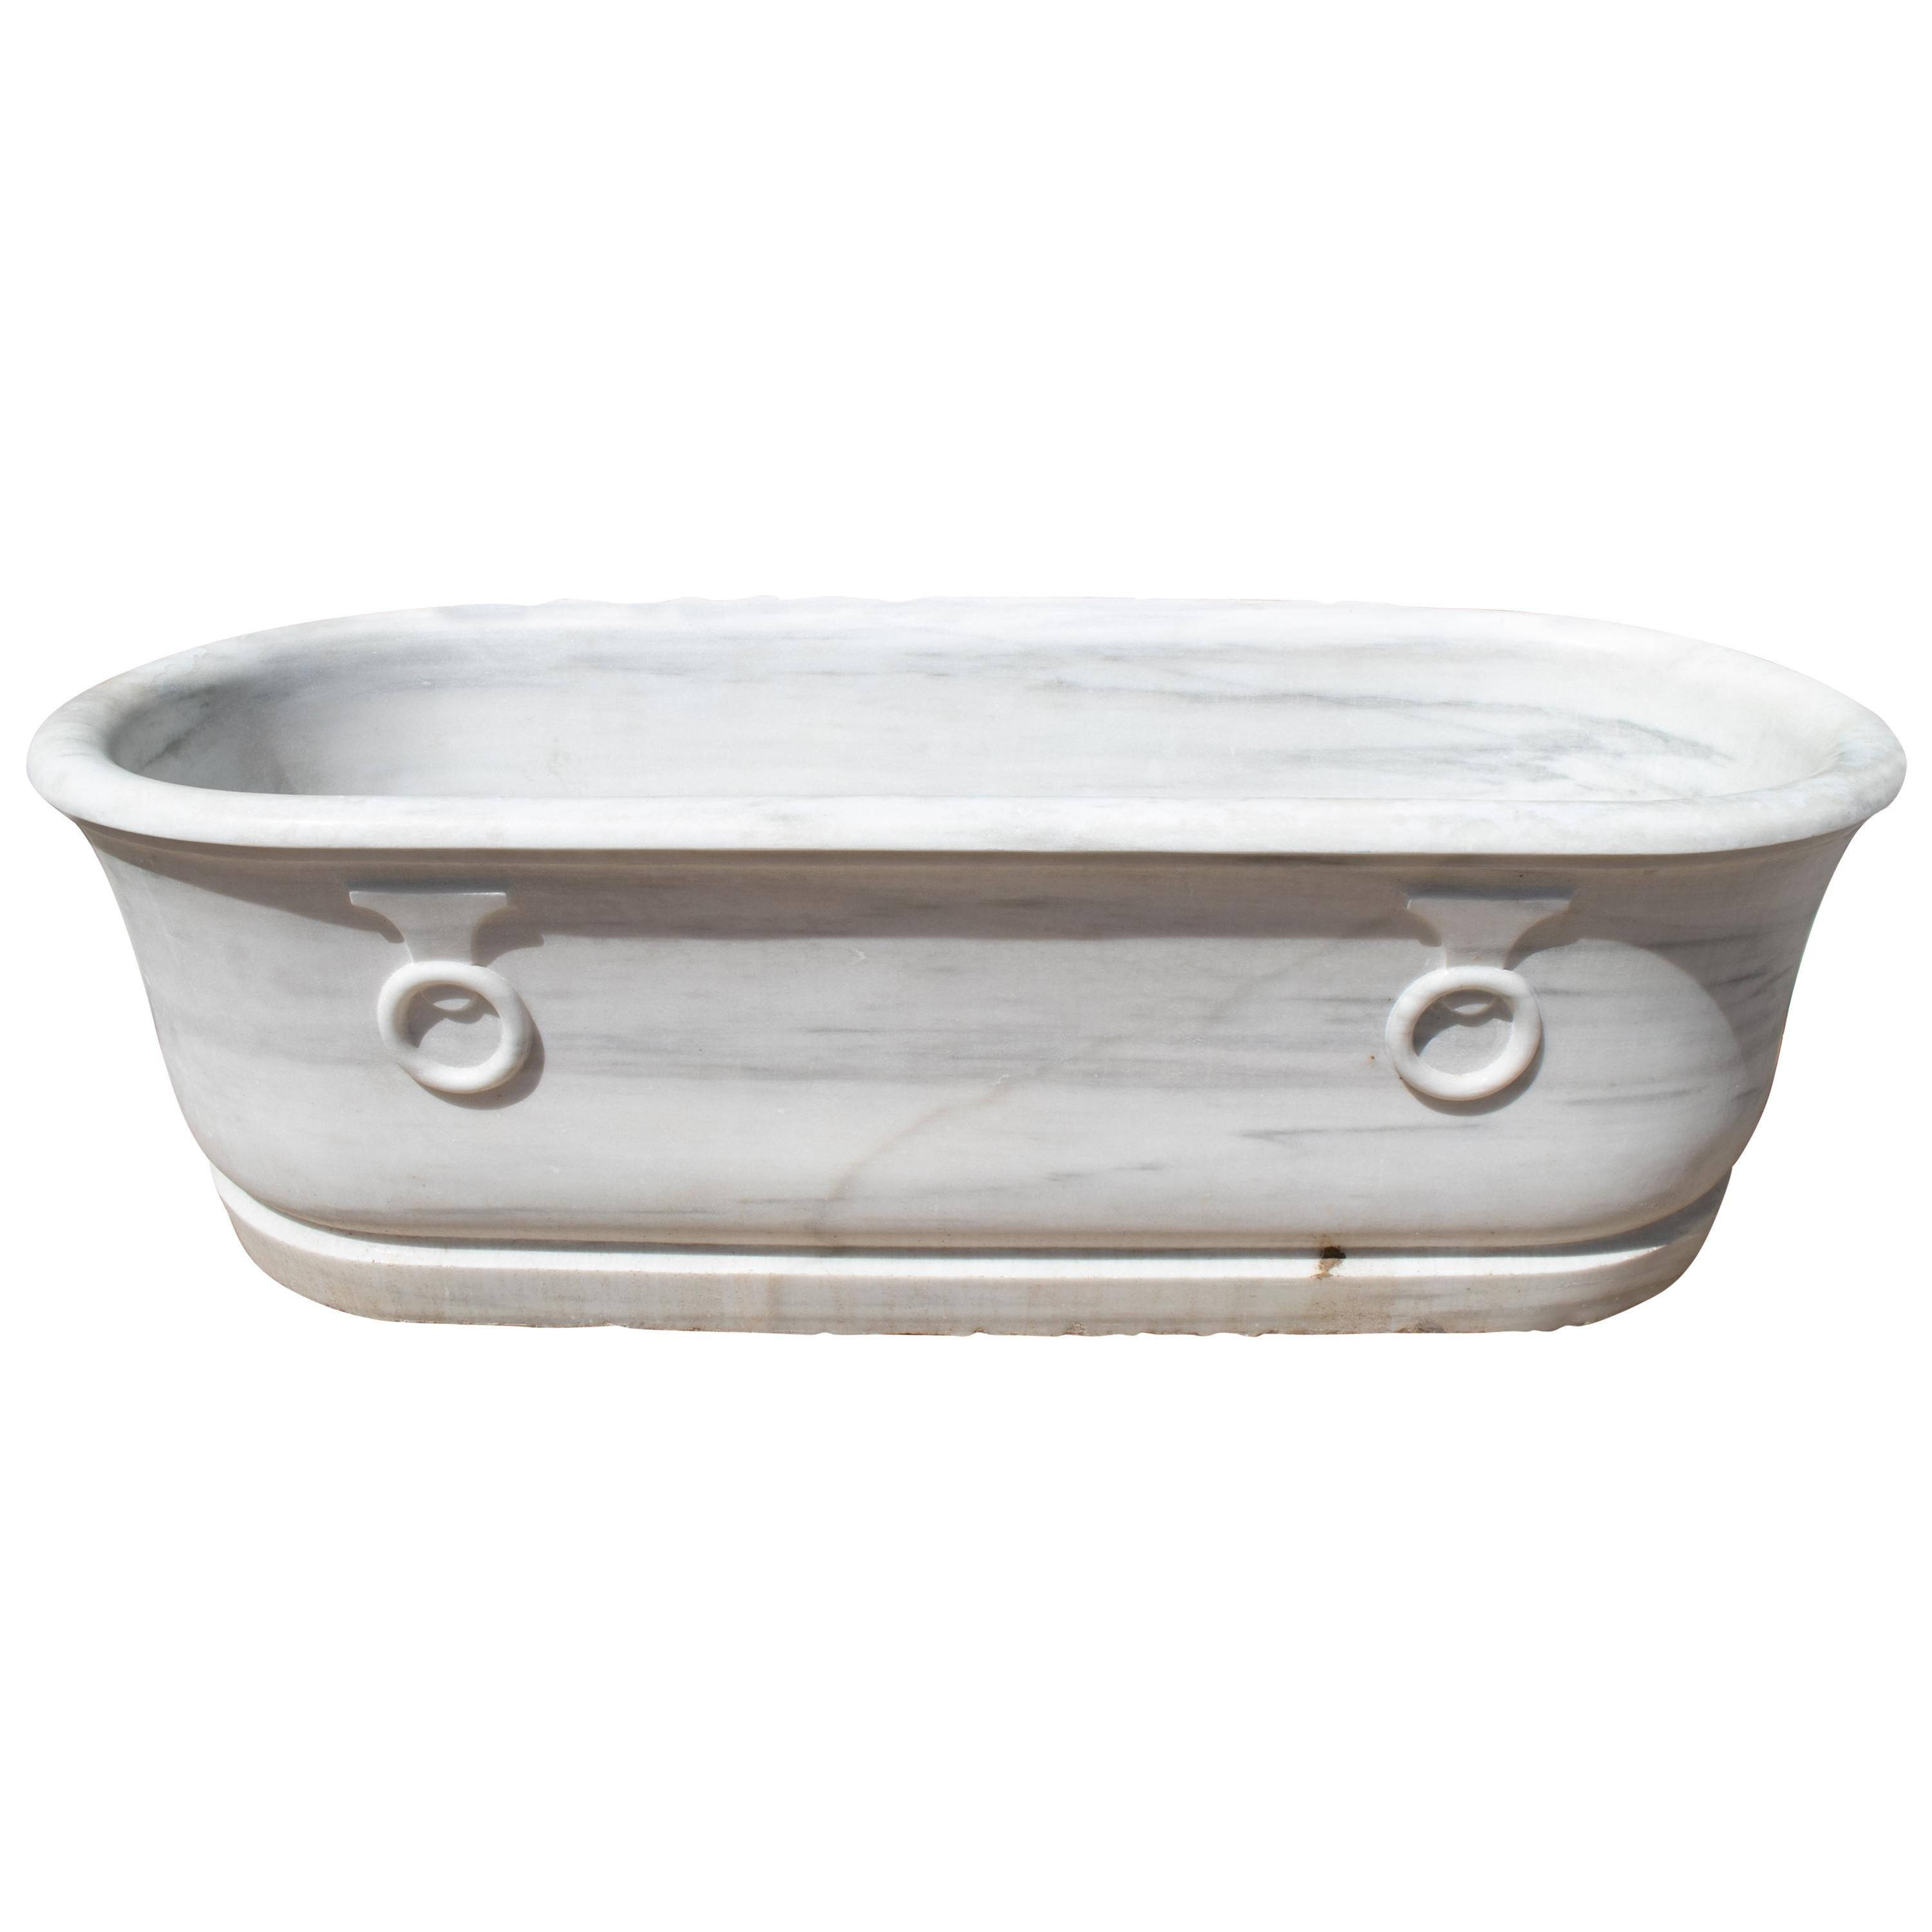 19th Century Spanish Hand Carved One Piece Marble Bath with Rings